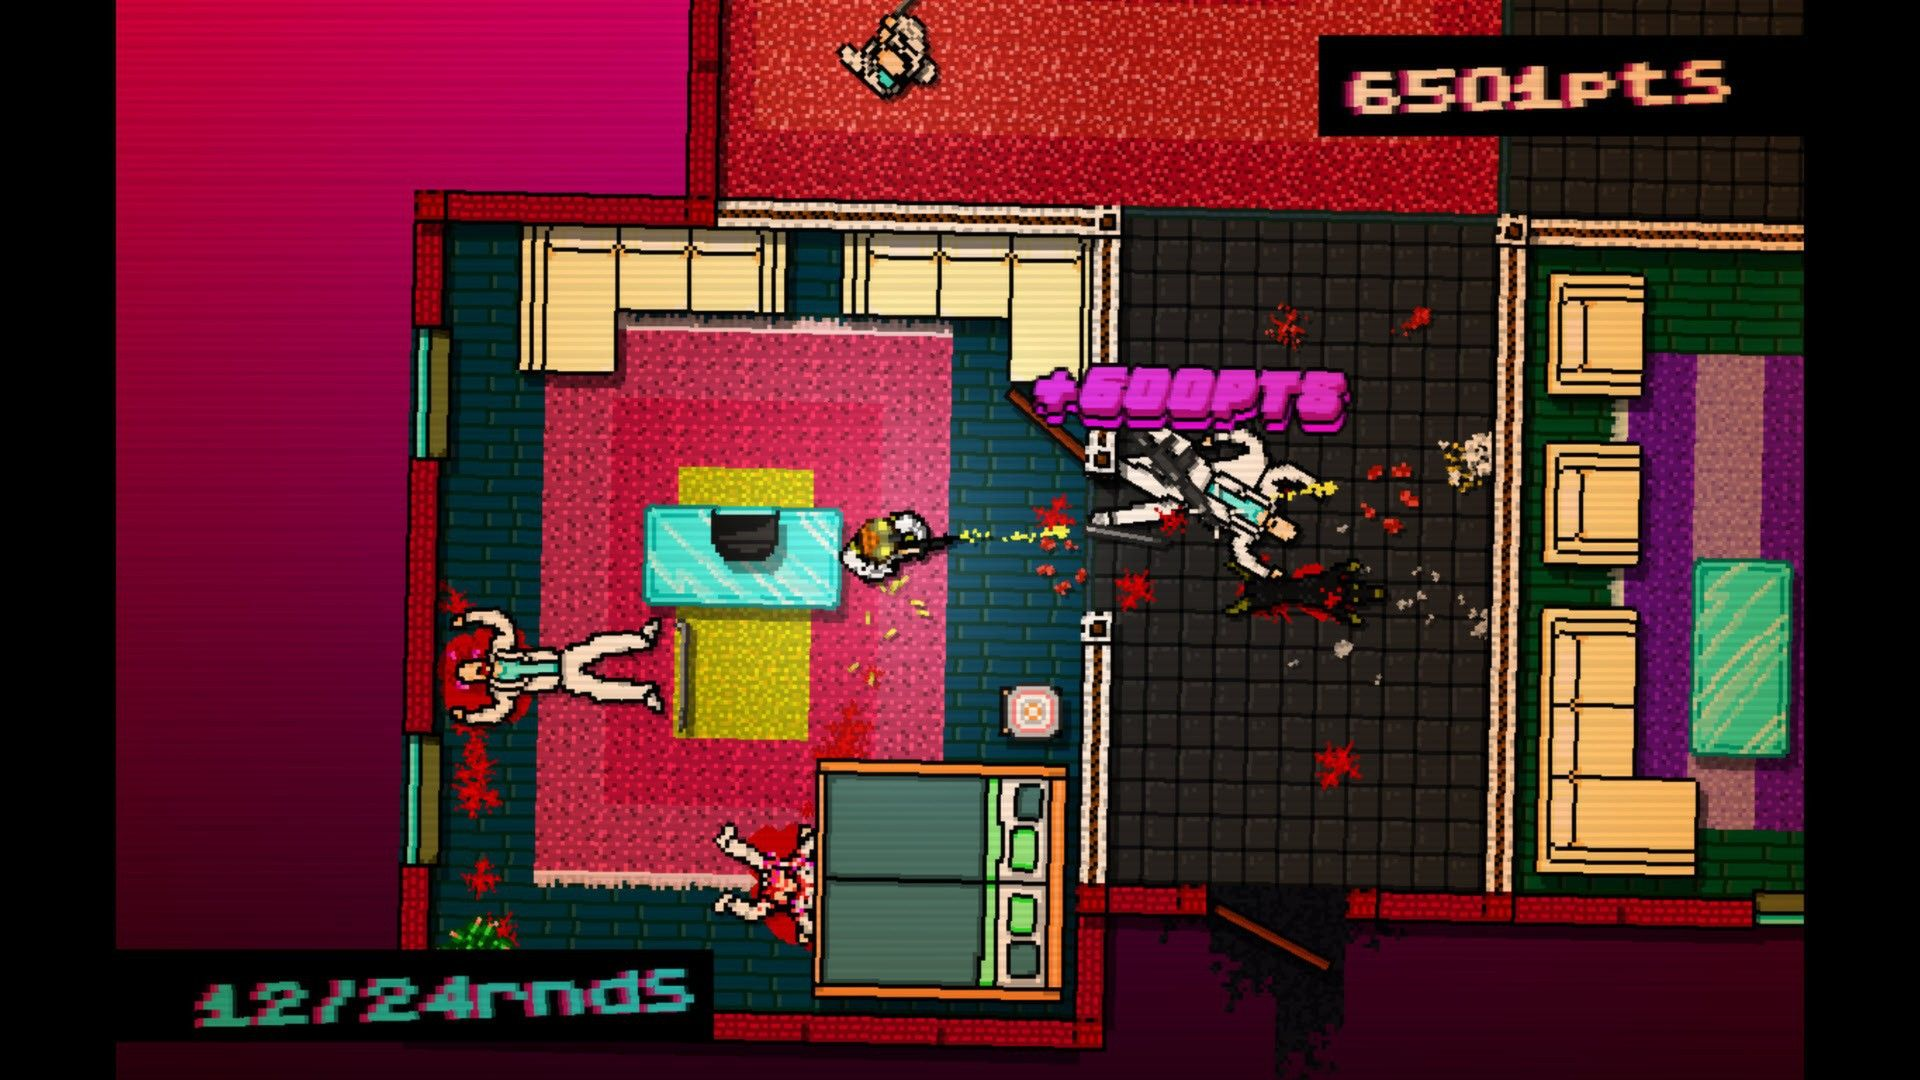 Hotline Miami Top Down Action Http Hotlinemiami Com Hotline Miami Best Indie Games Indie Game Art